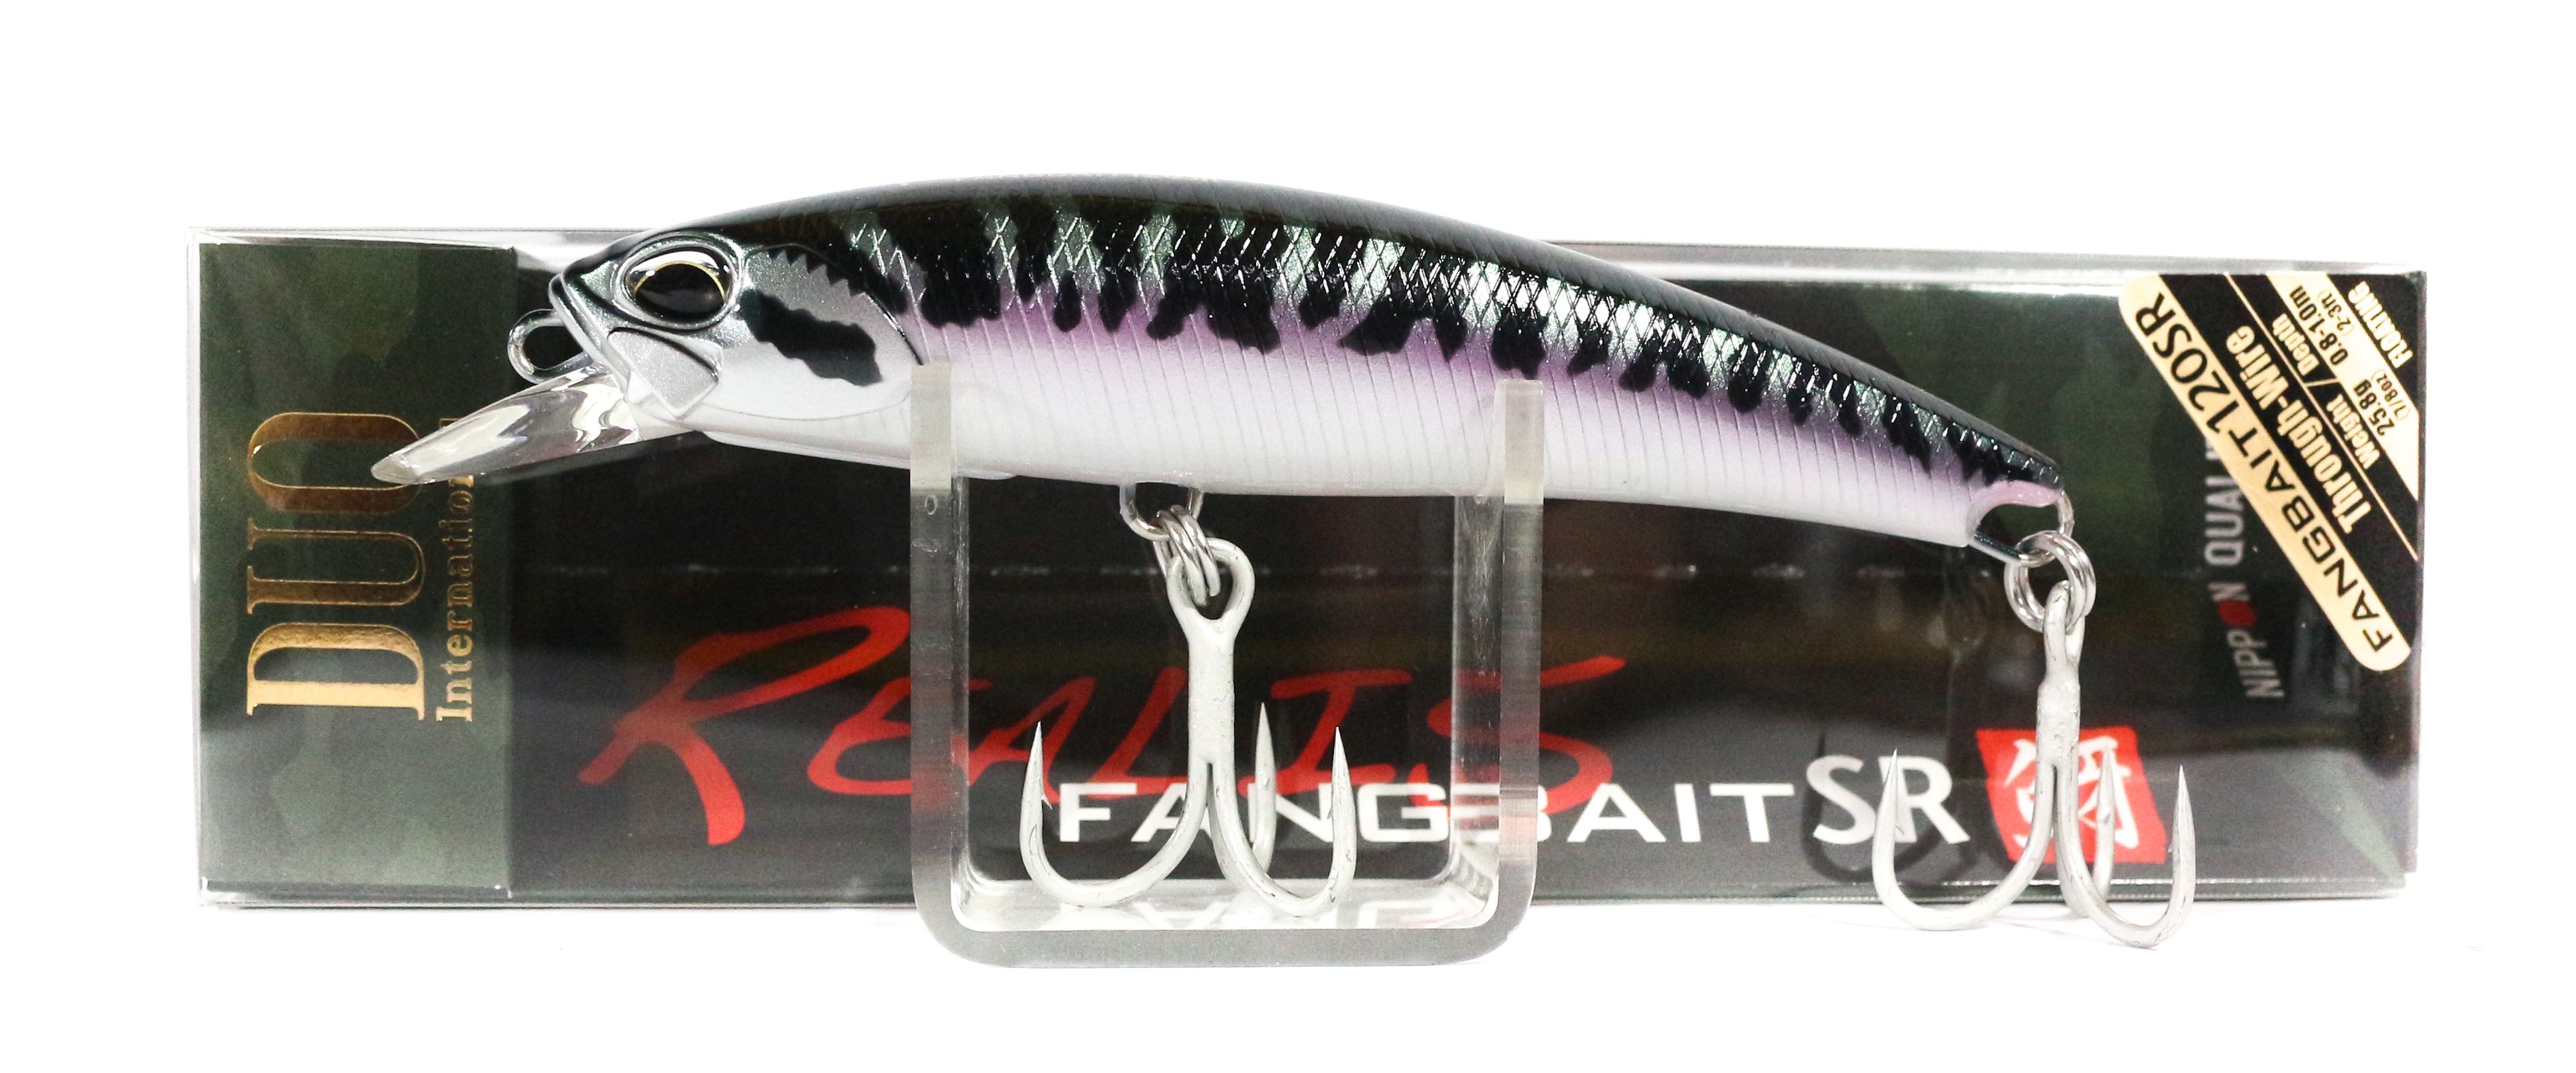 Duo Realis Fangbait 120SR Floating Lure ACC3322 (2338)